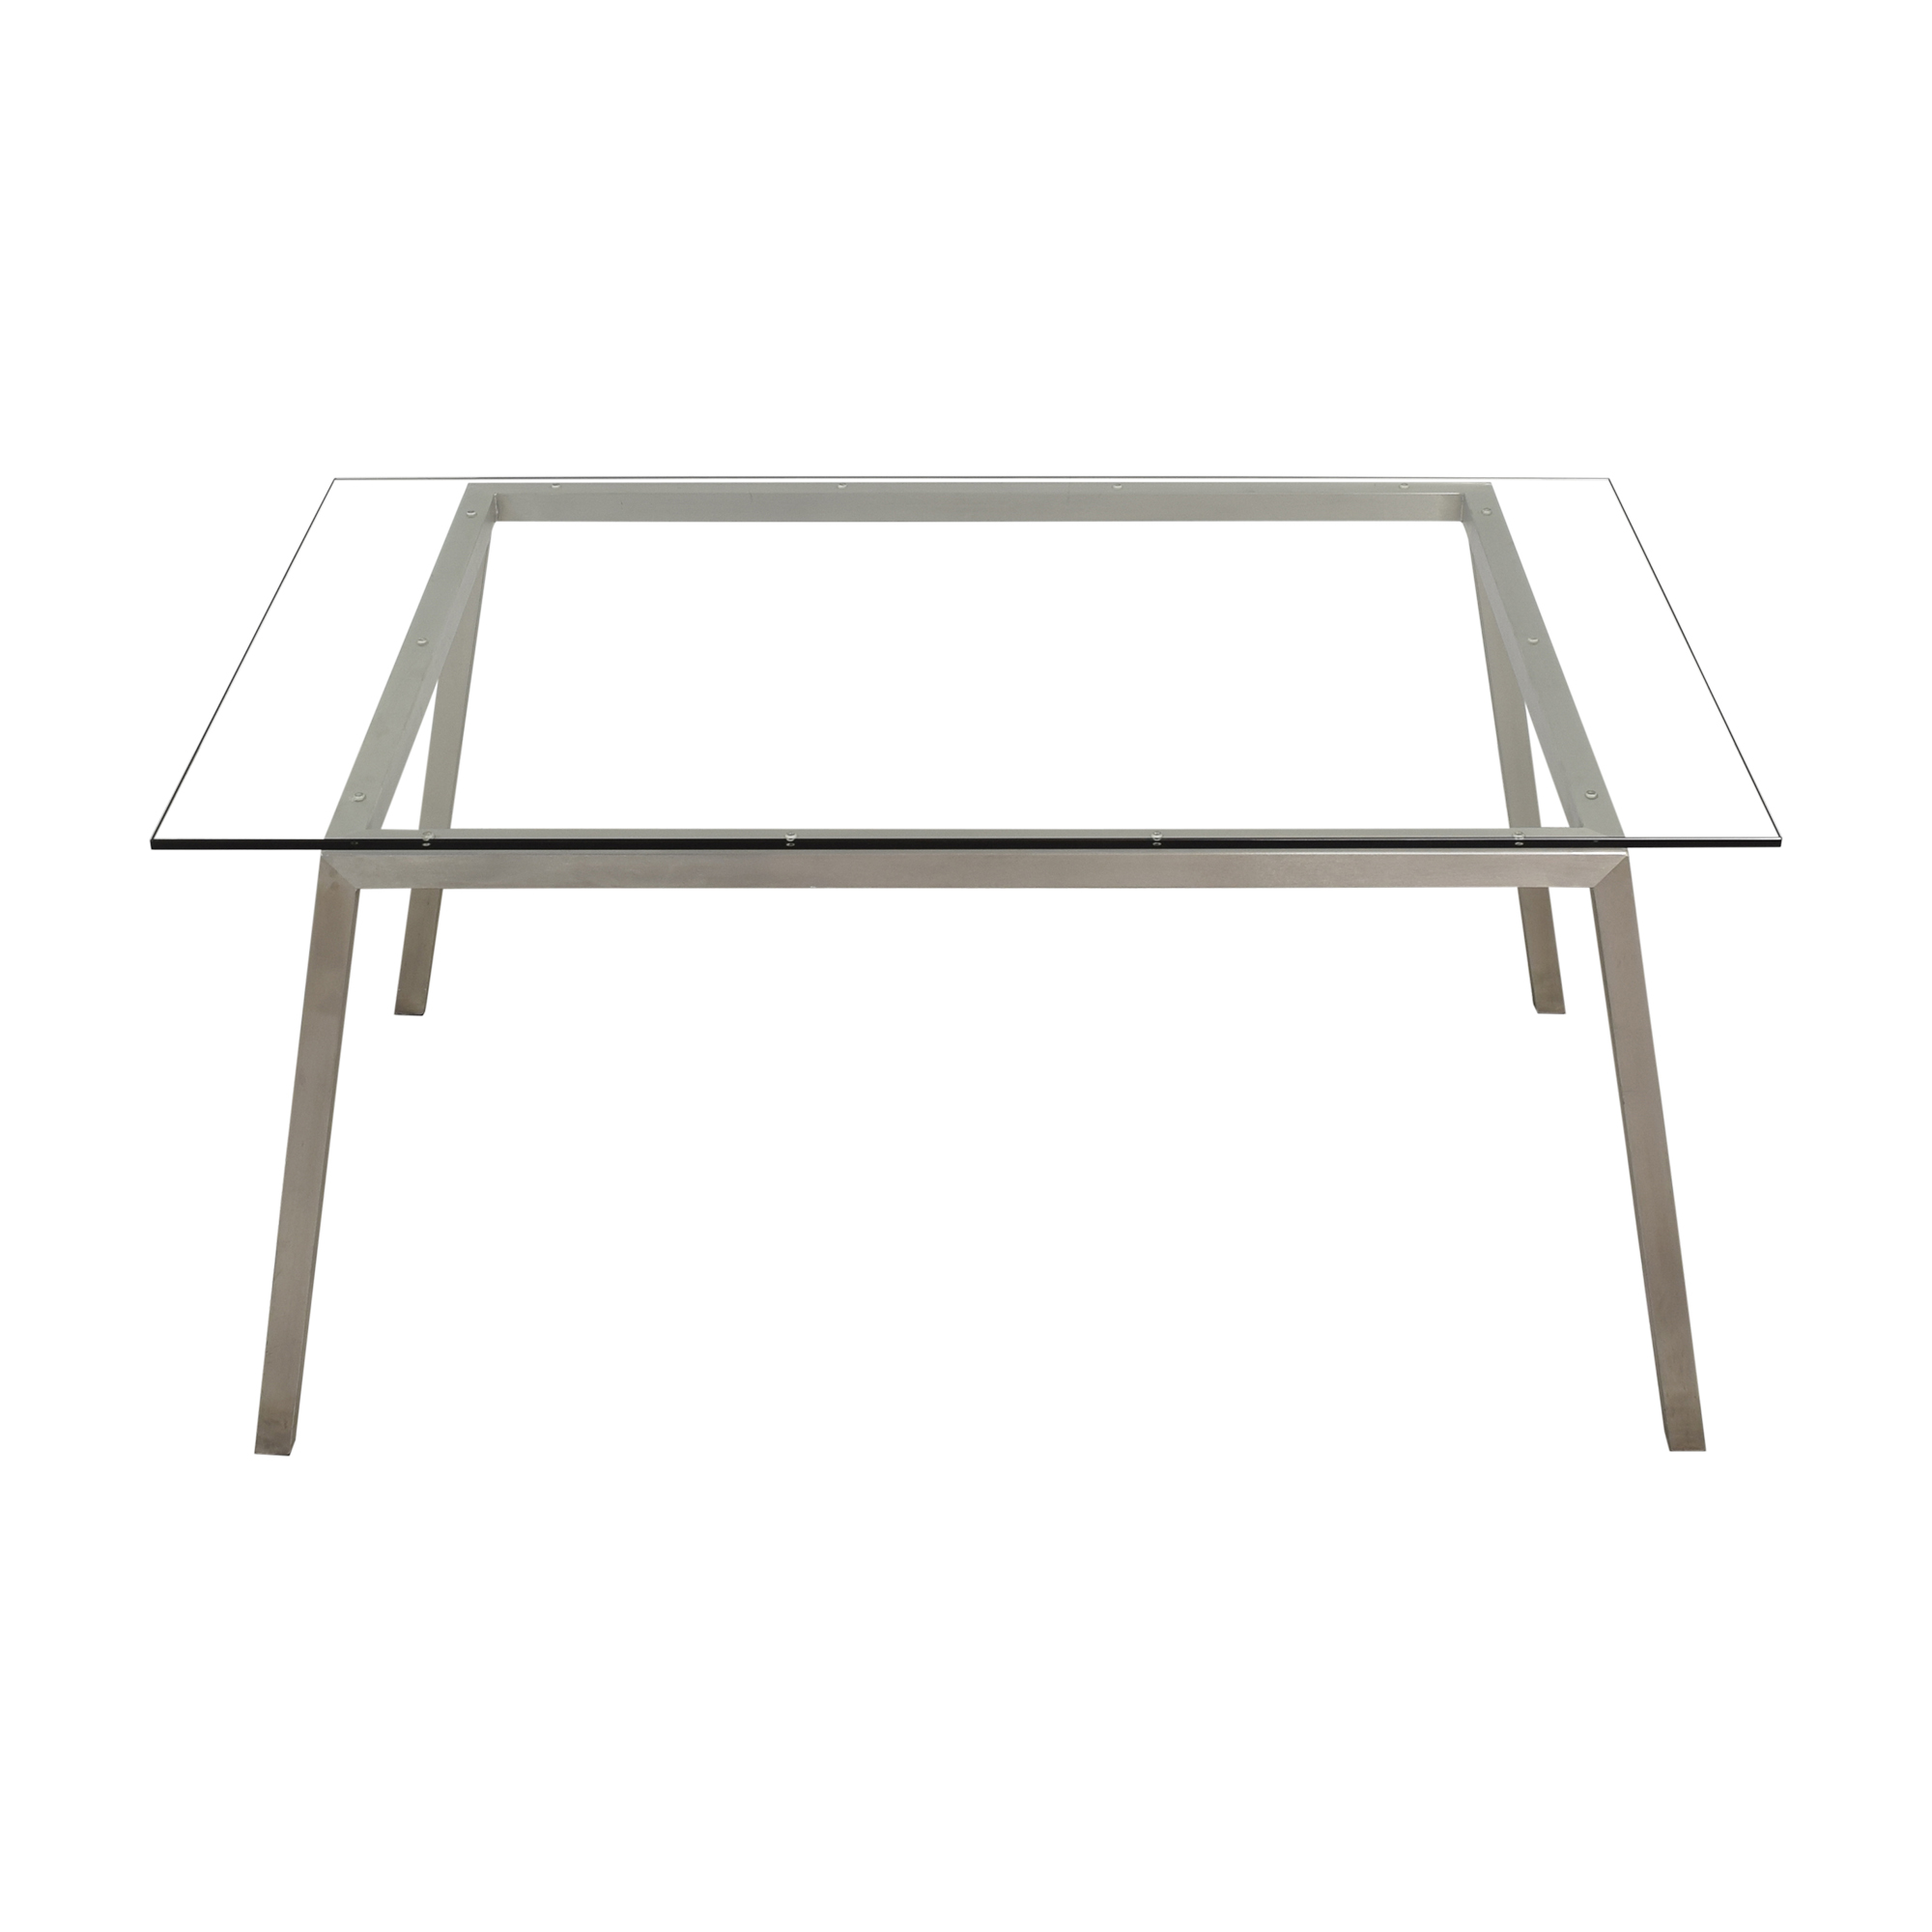 Room & Board Room & Board Cass Table silver